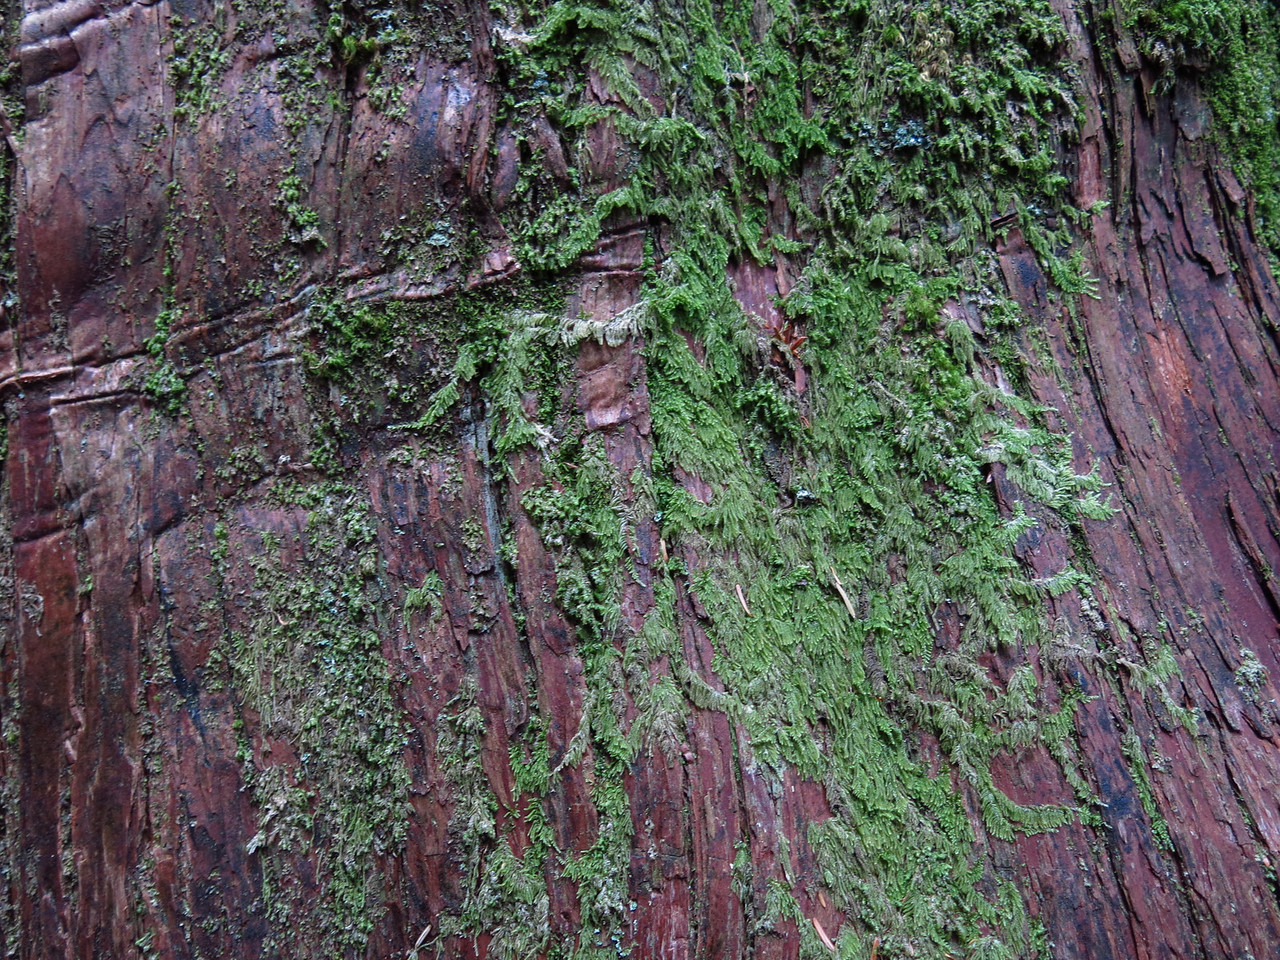 I wondered how the camera would render the texture of a moss covered tree trunk.  Not bad.